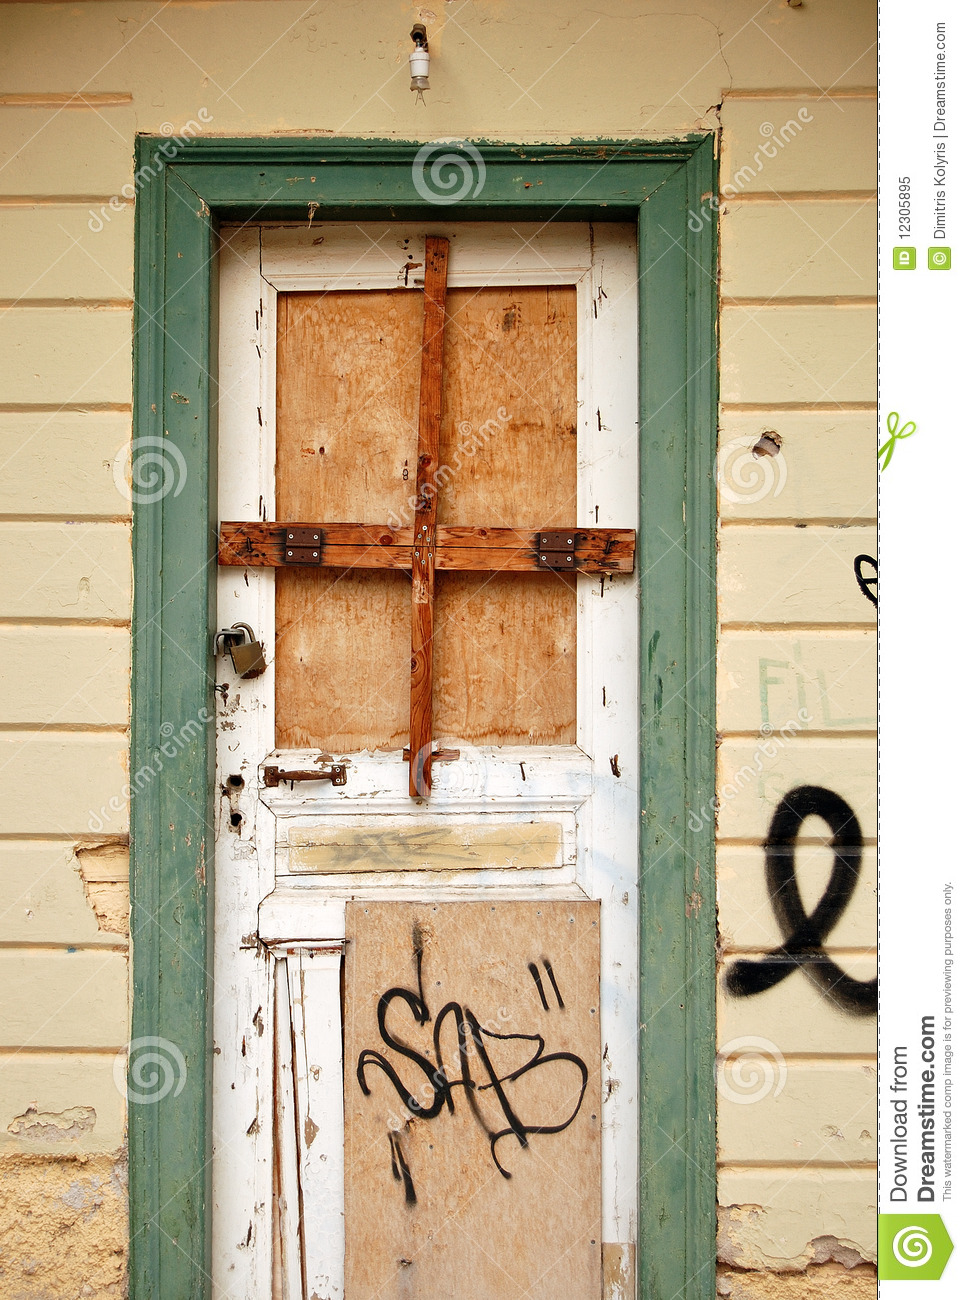 Boarded Up Door Royalty Free Stock Photo